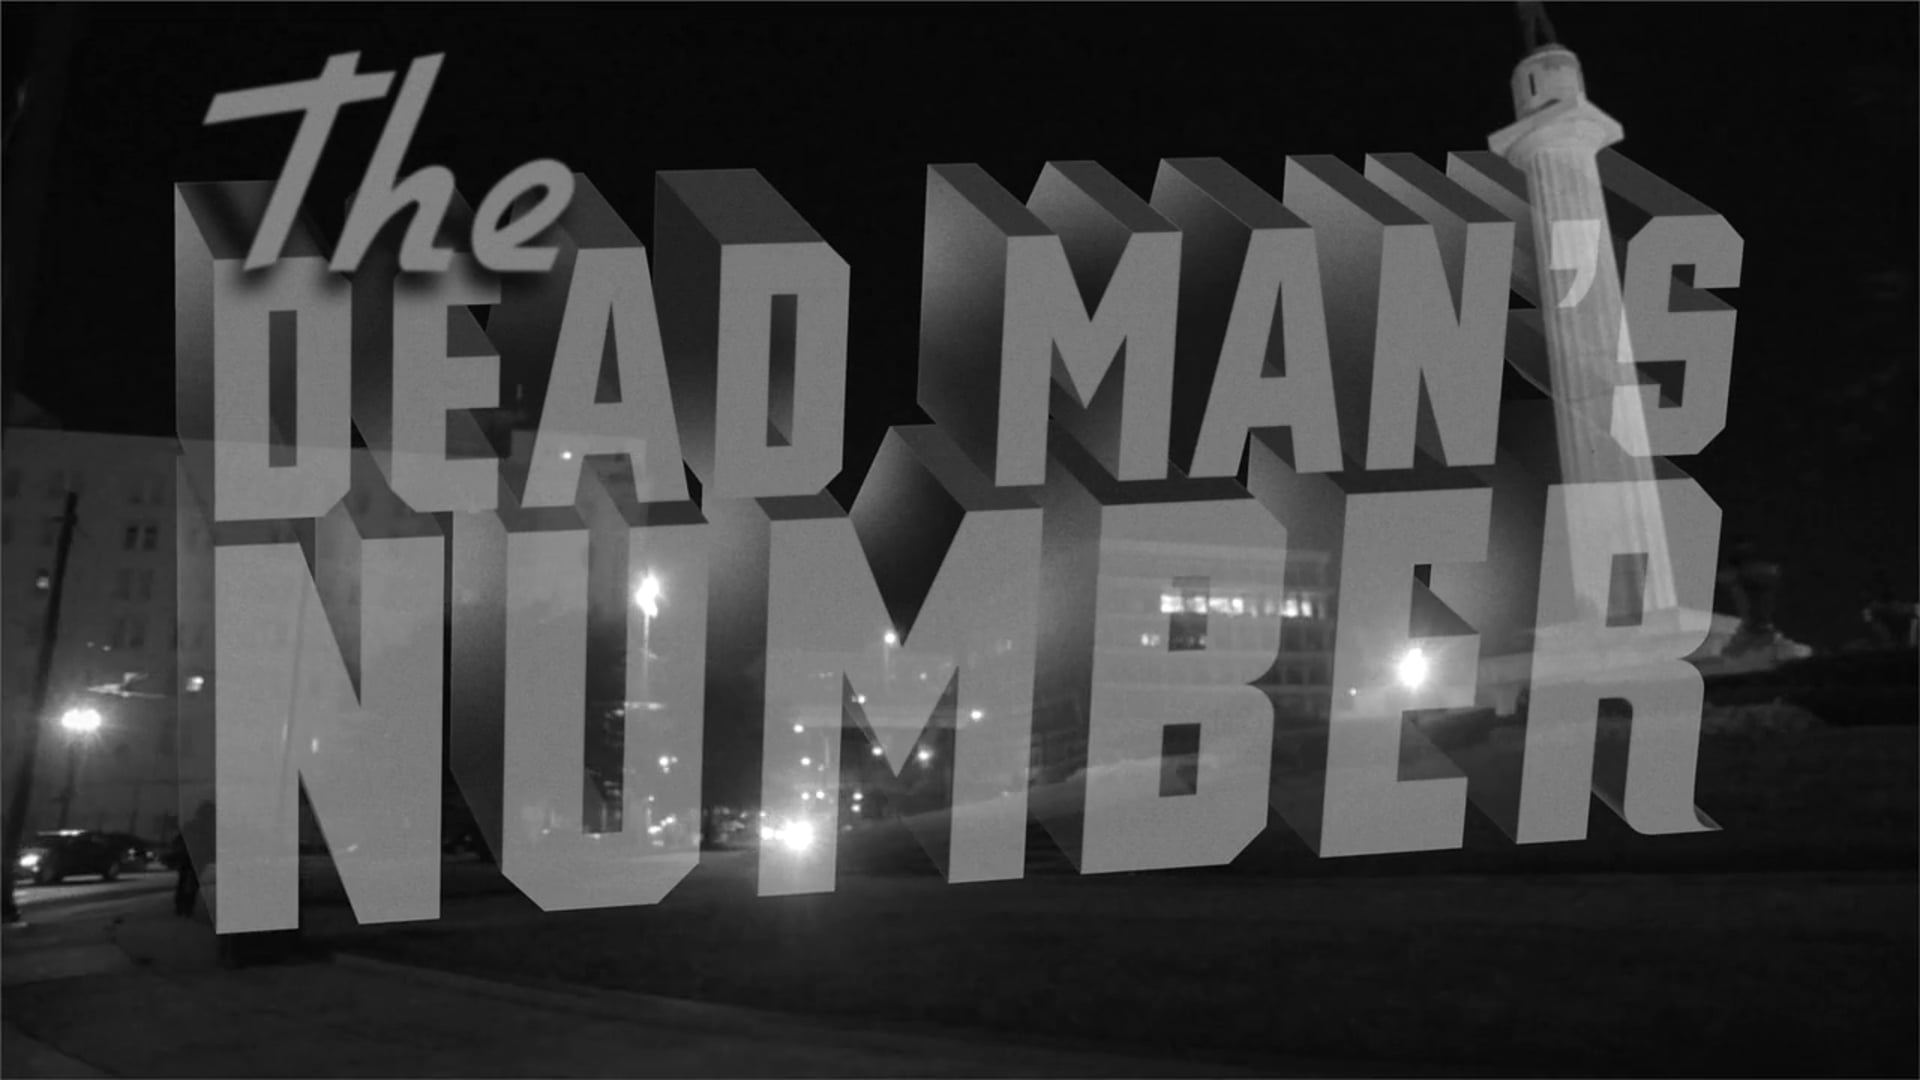 The Dead Man's Number